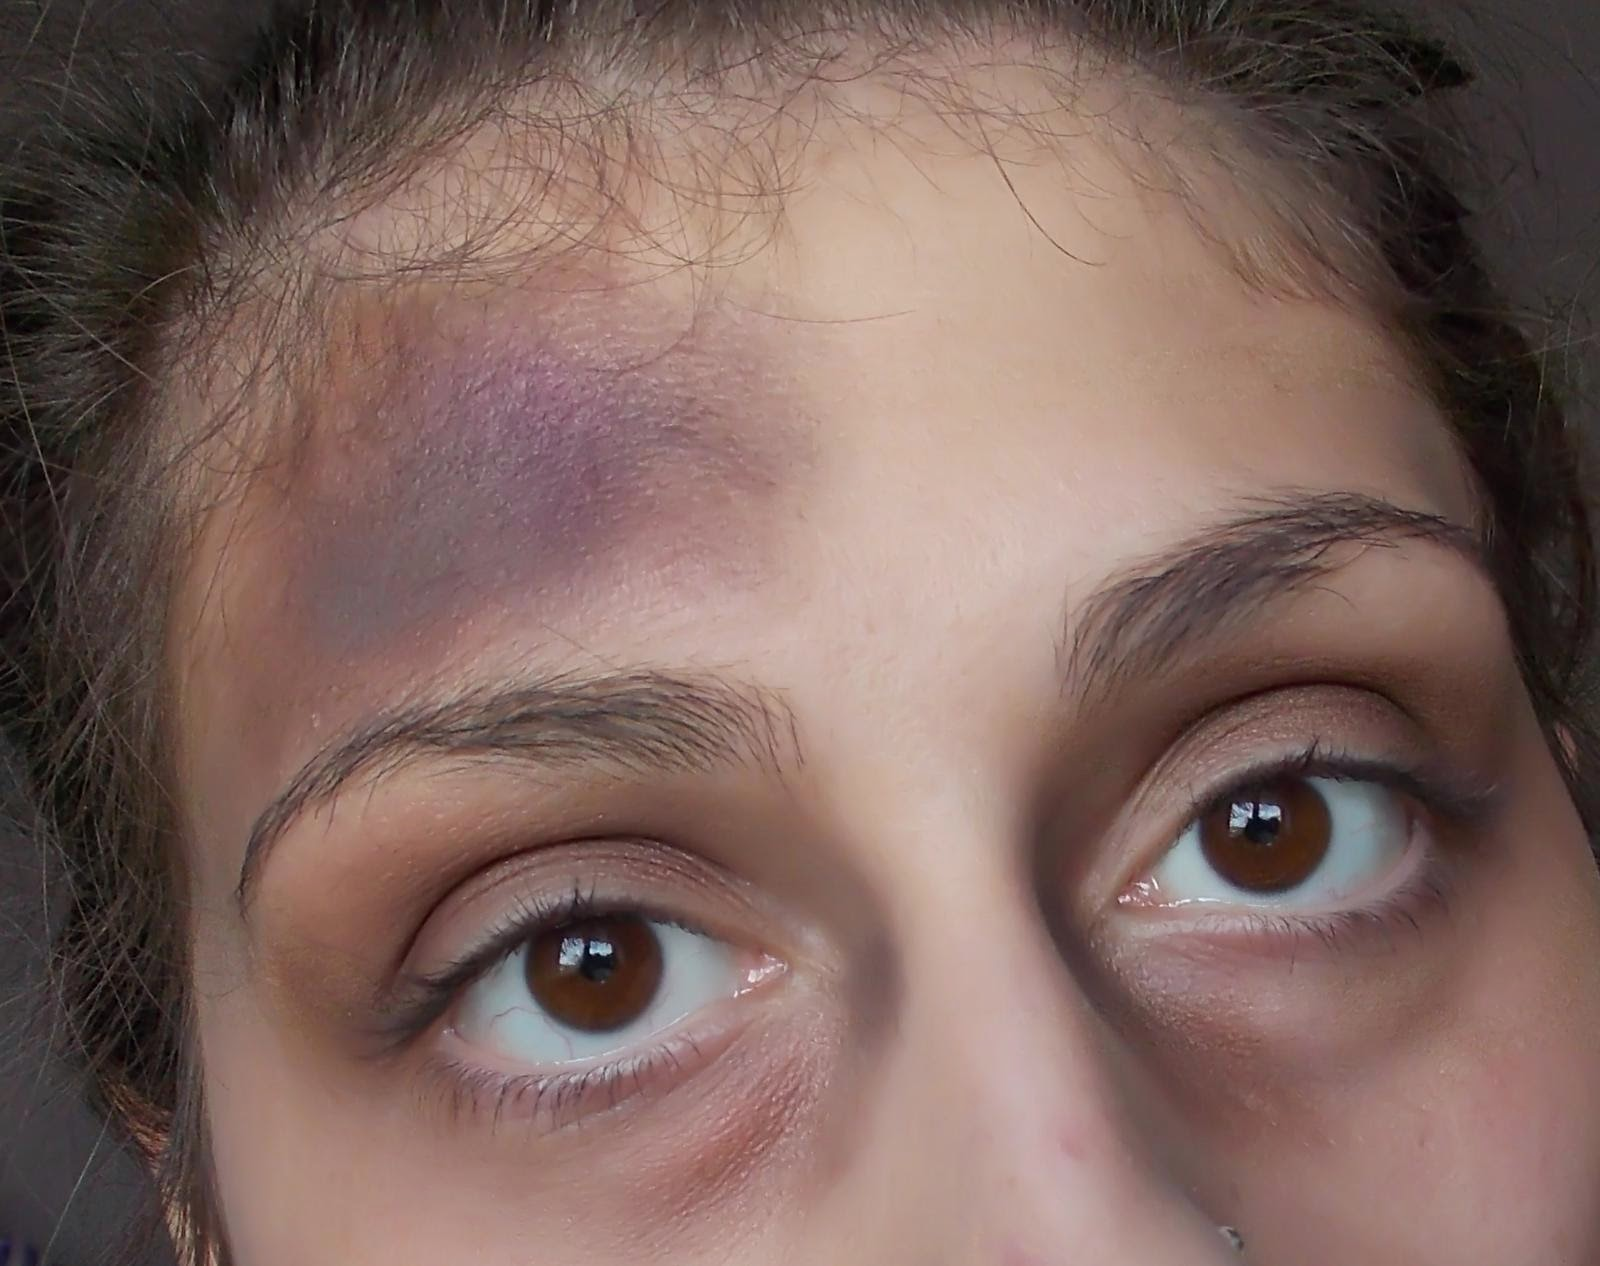 Makeup Ideas bruise makeup : Easy Generic Halloween Makeup Look ~ Beauty, Lifestyle, Ramblings with ...